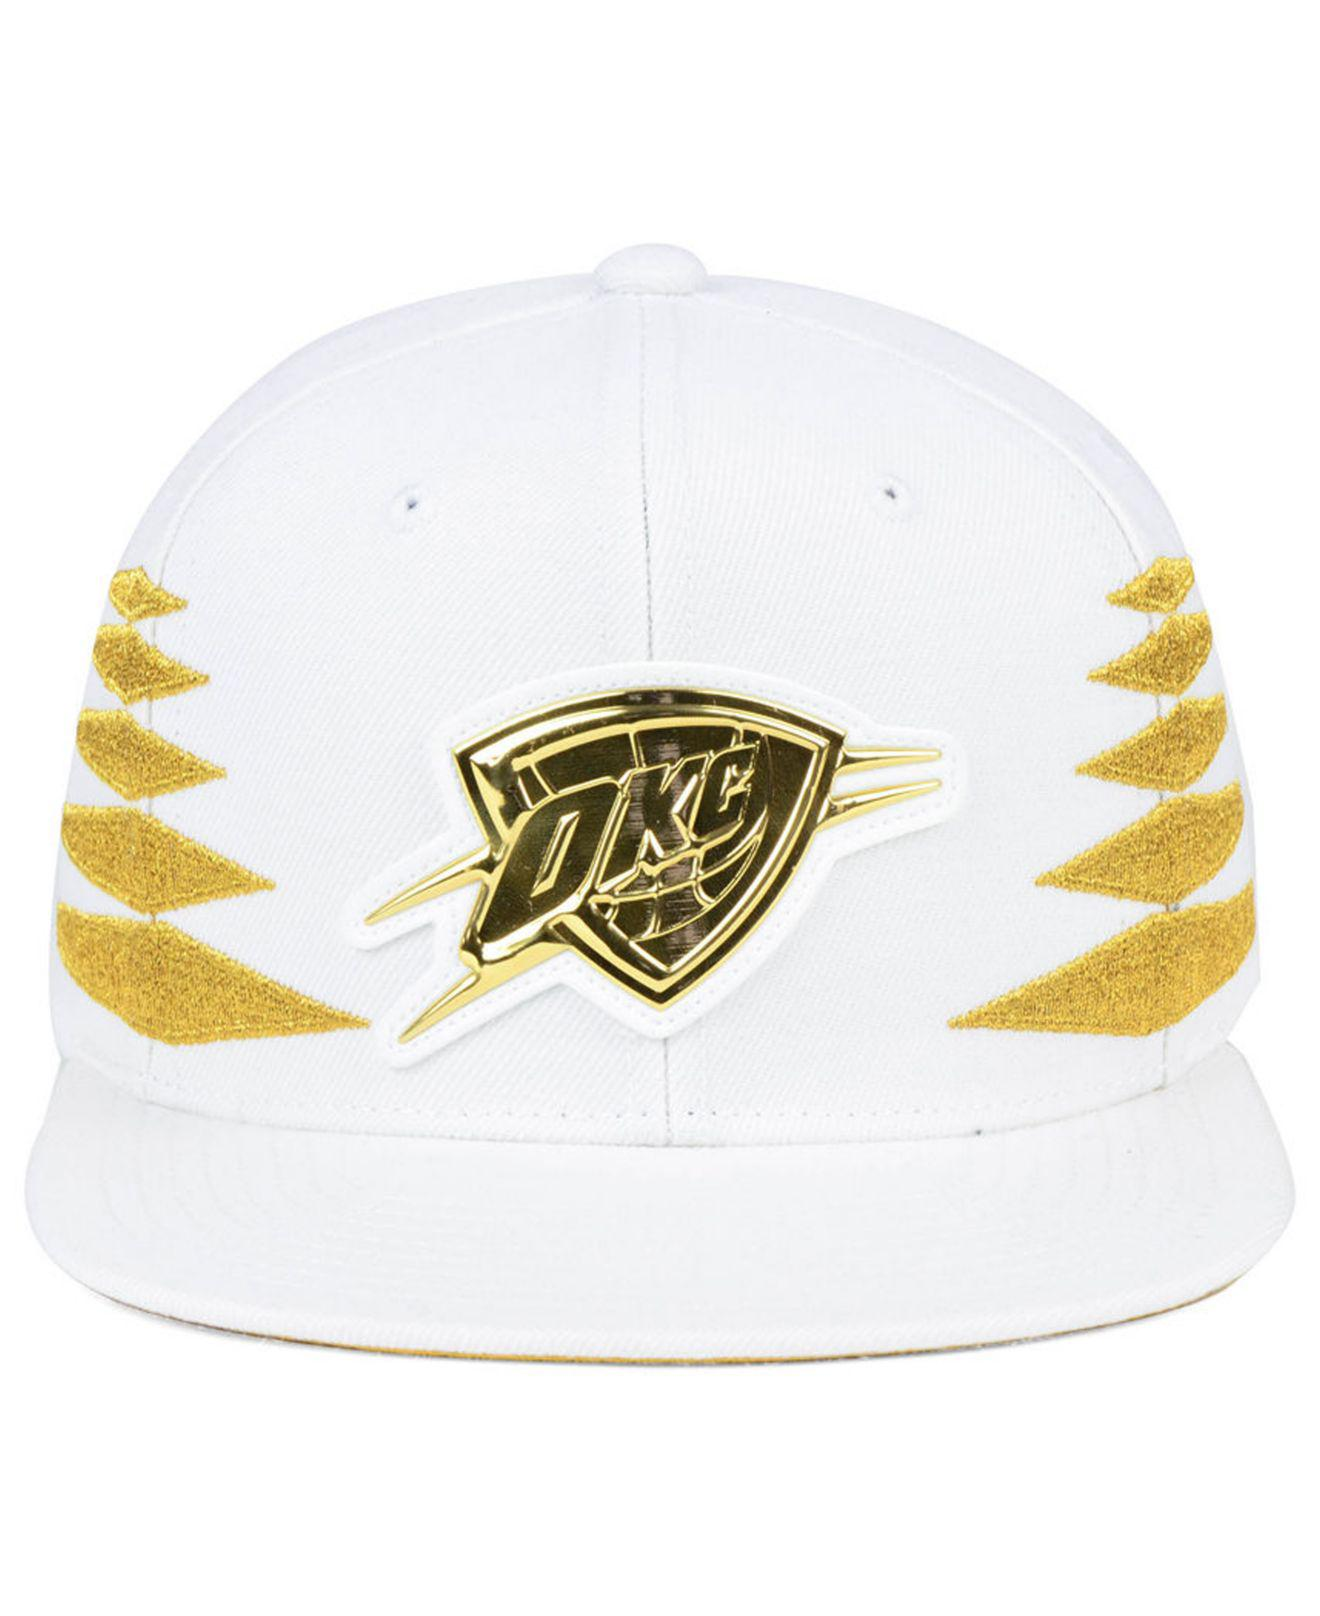 promo code ee89a d6100 Mitchell   Ness Oklahoma City Thunder Gold Diamonds Snapback Cap in ...